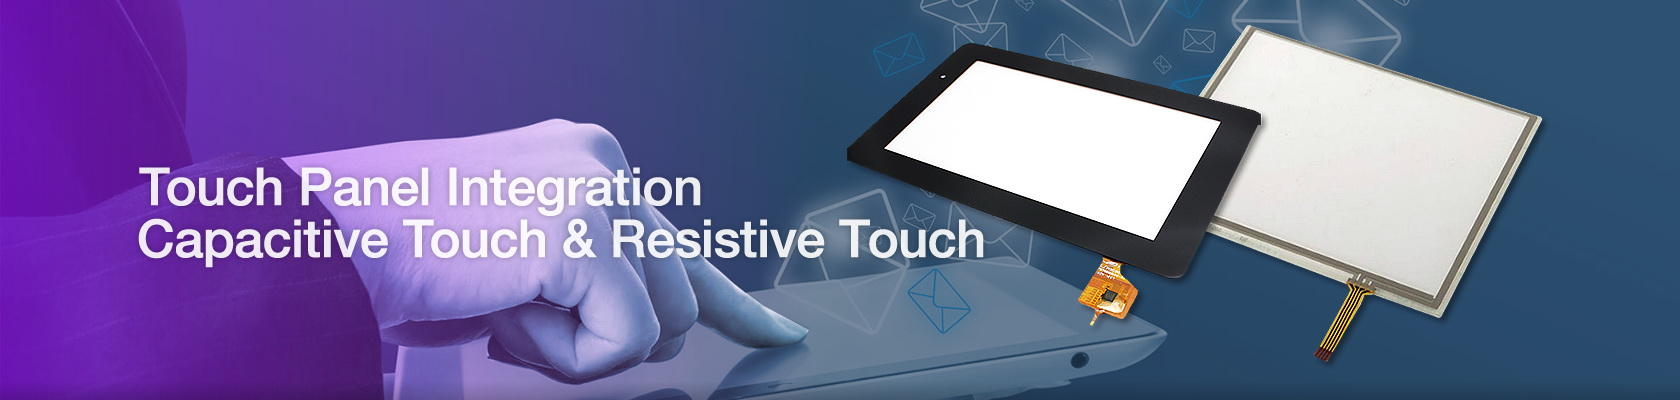 Touch pane